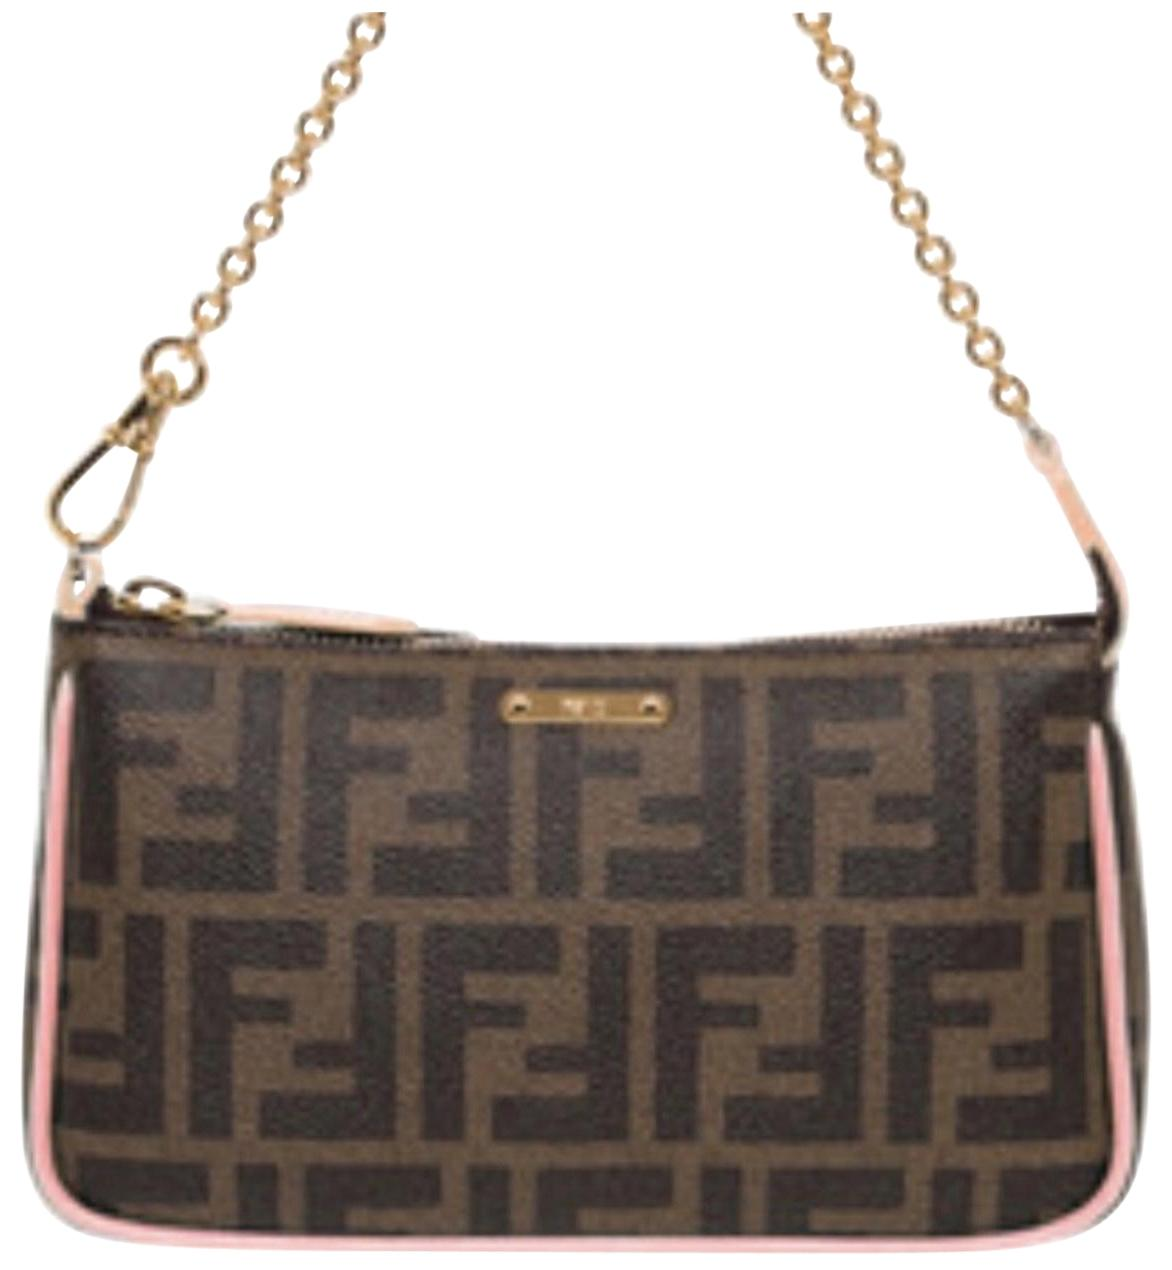 logo pouch - Brown Fendi For Cheap Sale Online For Sale Purchase Cheap Online Outlet Professional tvLD29b